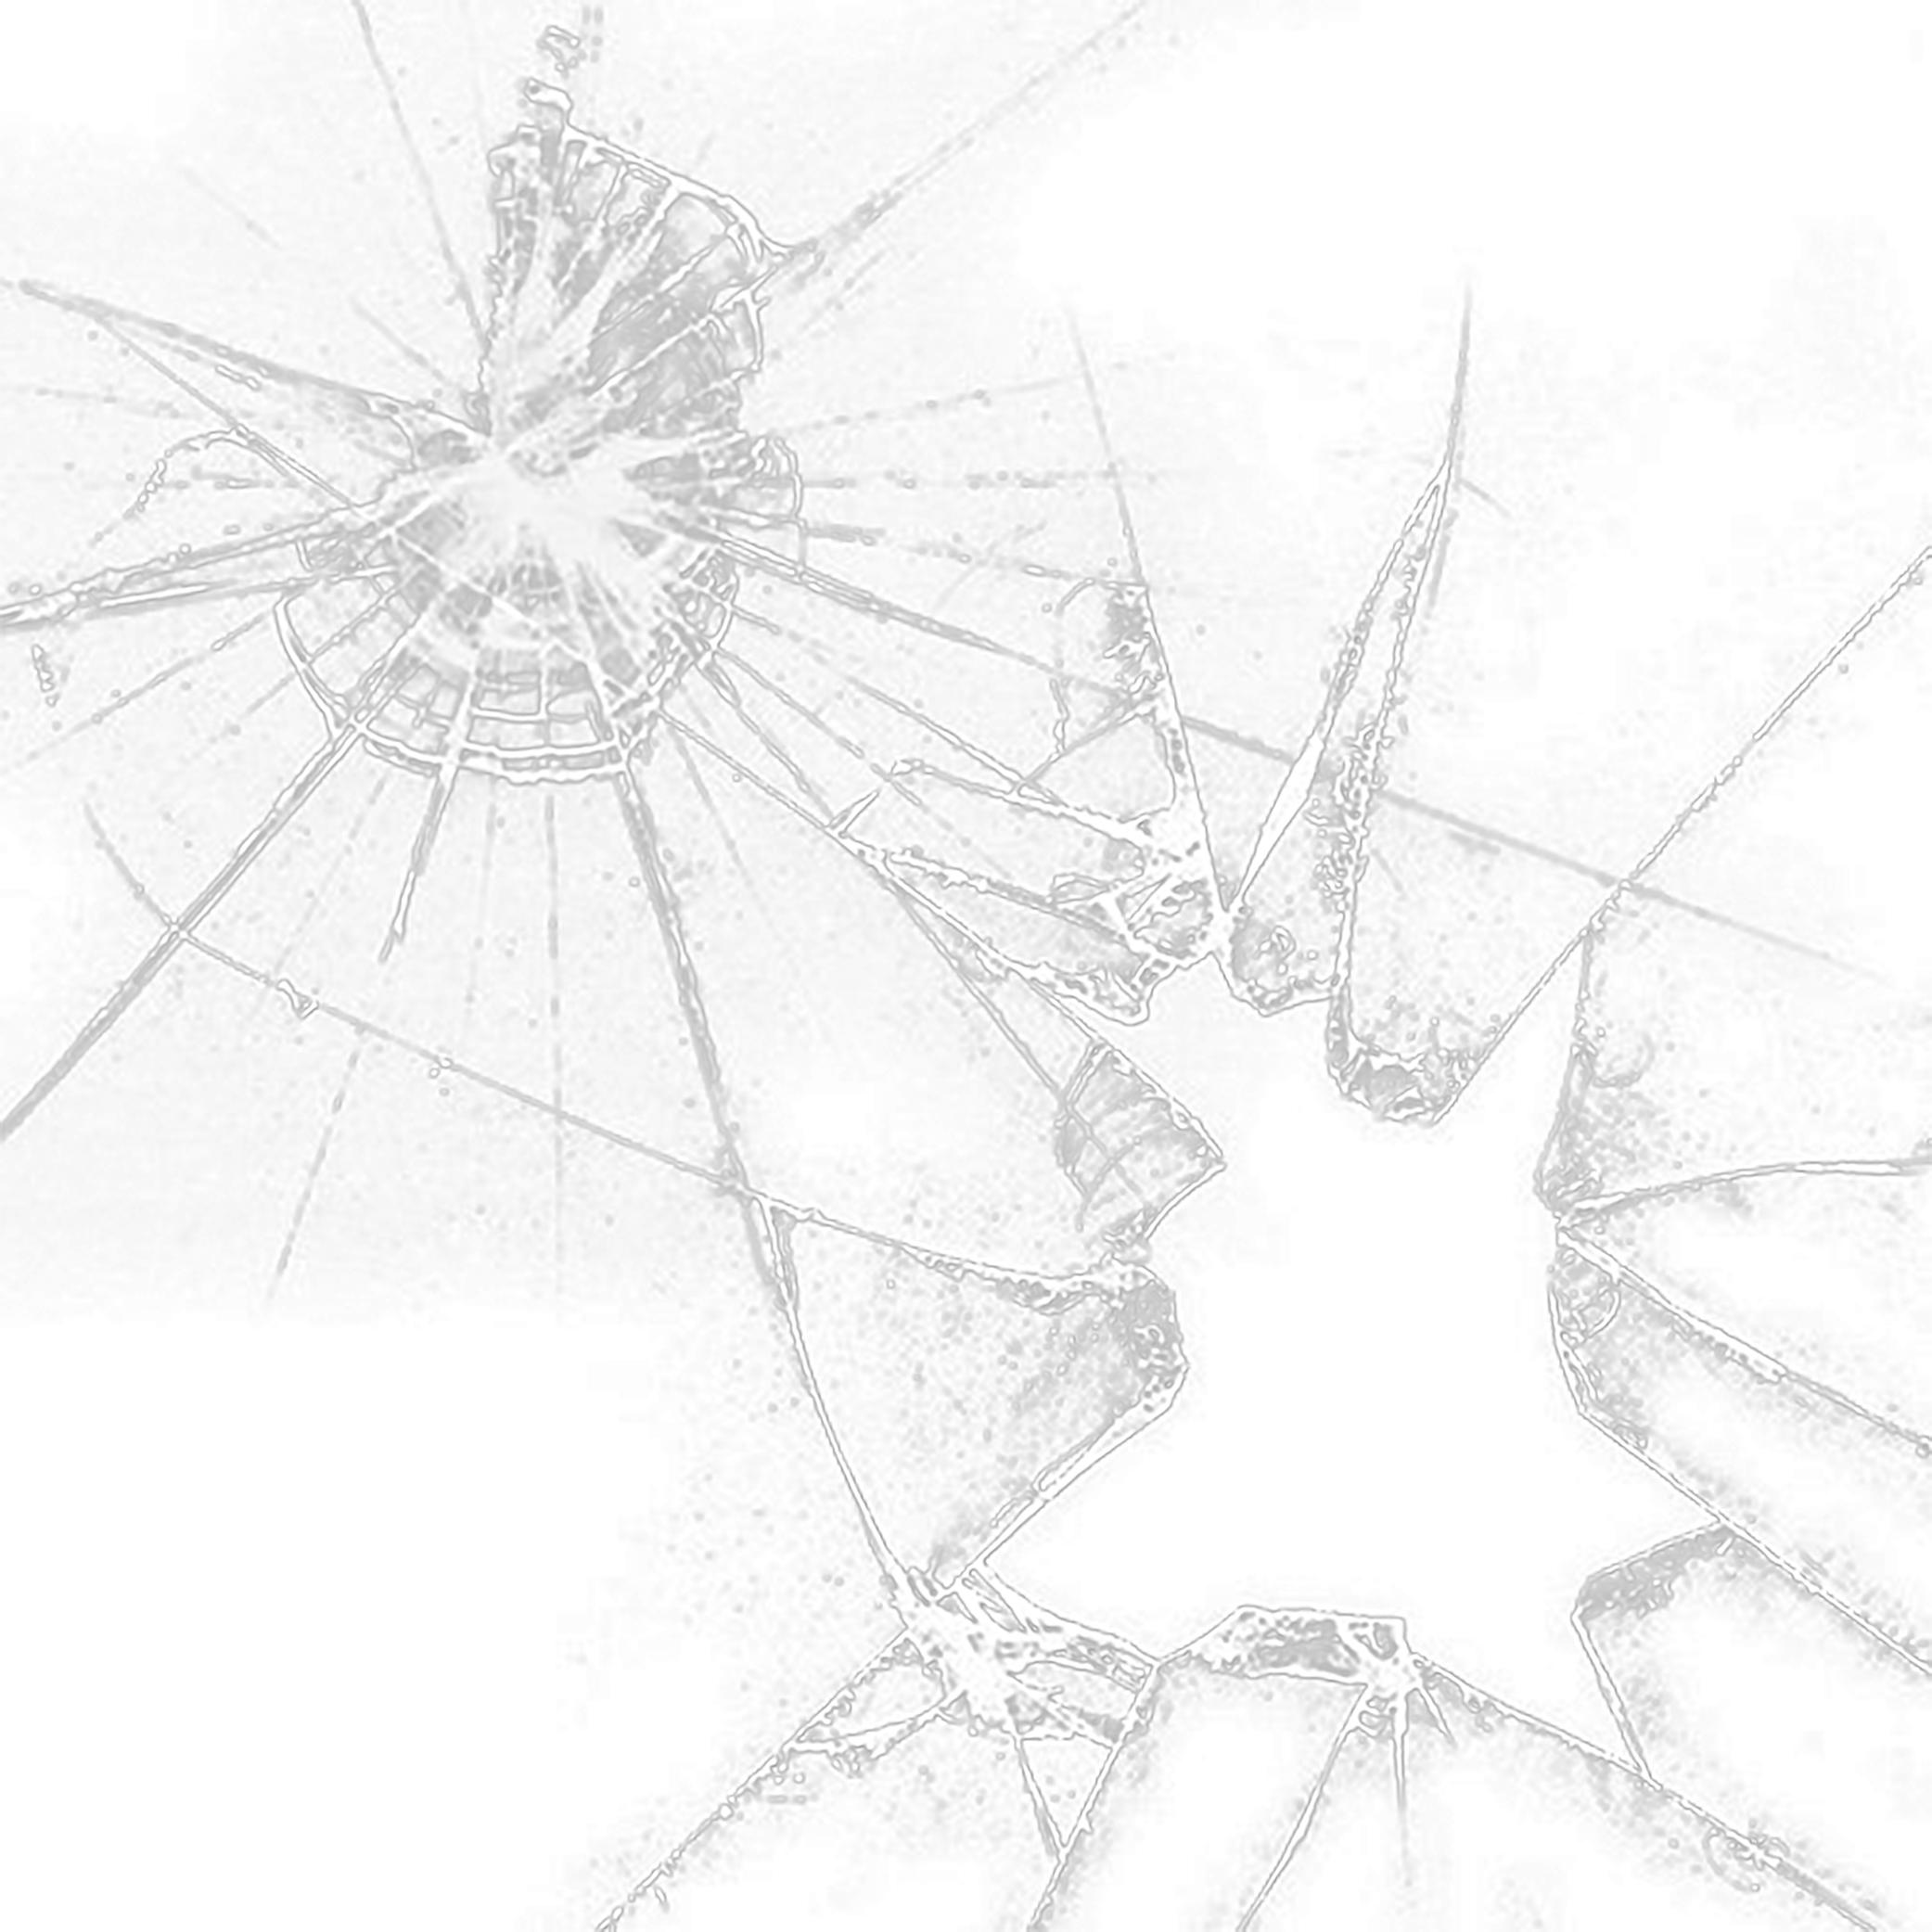 PNG images, PNGs, Broken glass, Shattered glass, (60).png ...